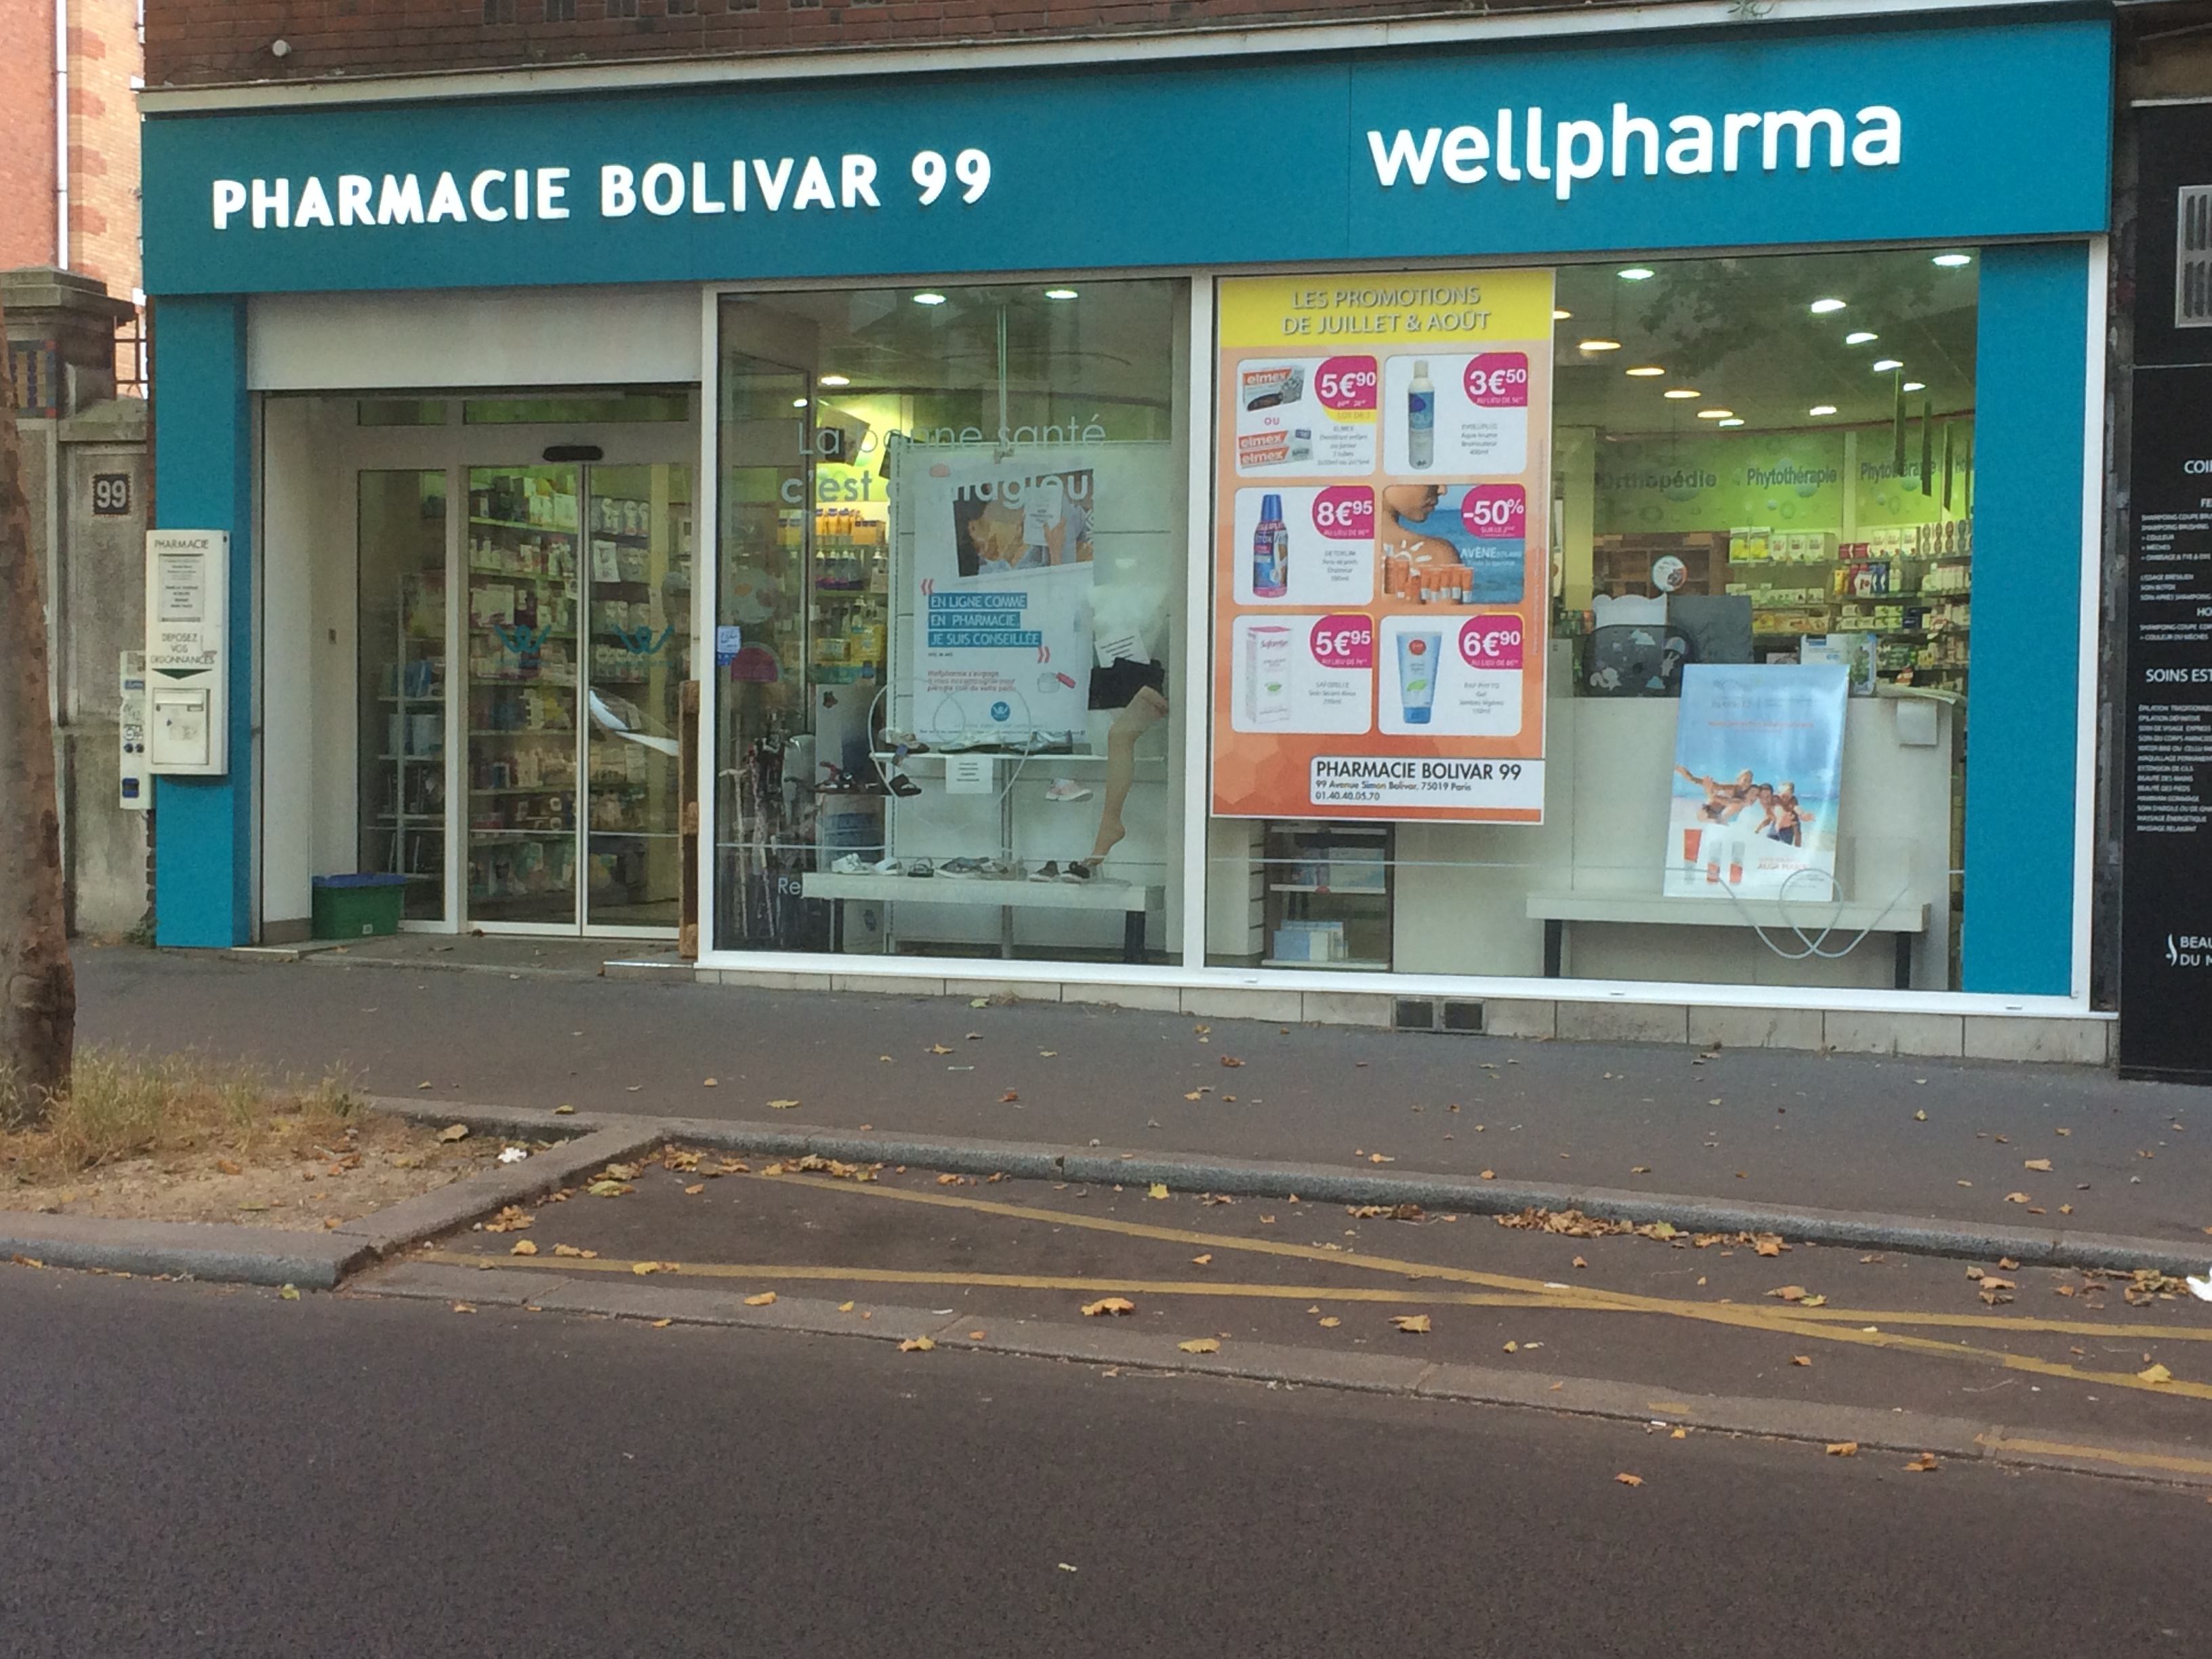 Pharmacie wellpharma | Pharmacie Bolivar 99